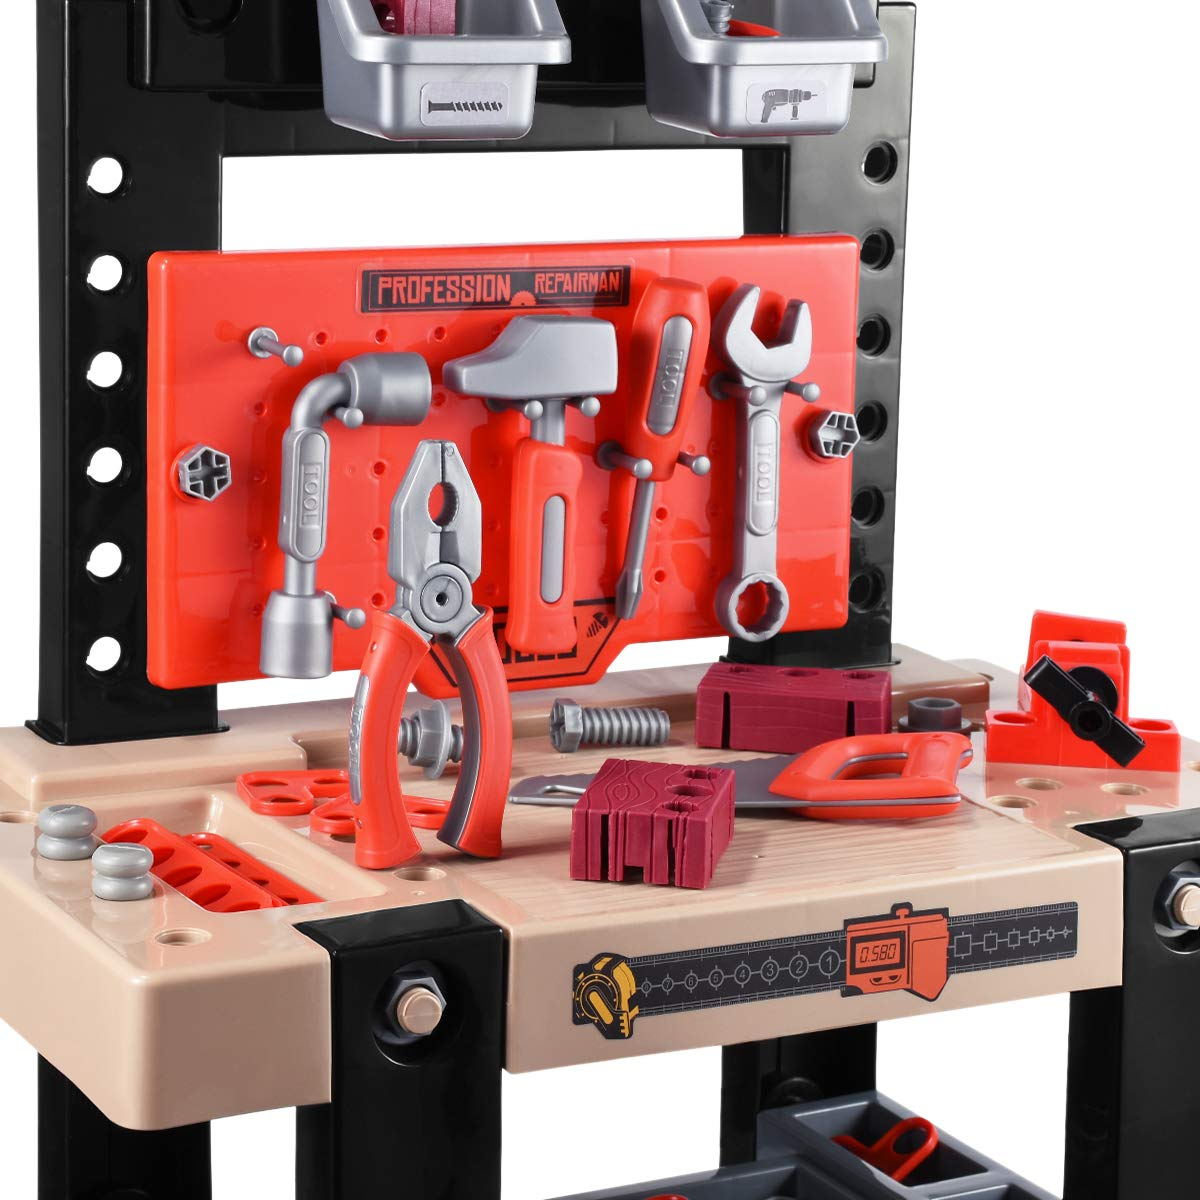 iBaseToy Toy Tool Bench, Kids Power Workbench, 91Piece Construction Toy Bench Set with Electric Drill, Educational Play & Pretend Play Workbench for Toddlers by iBaseToy (Image #5)